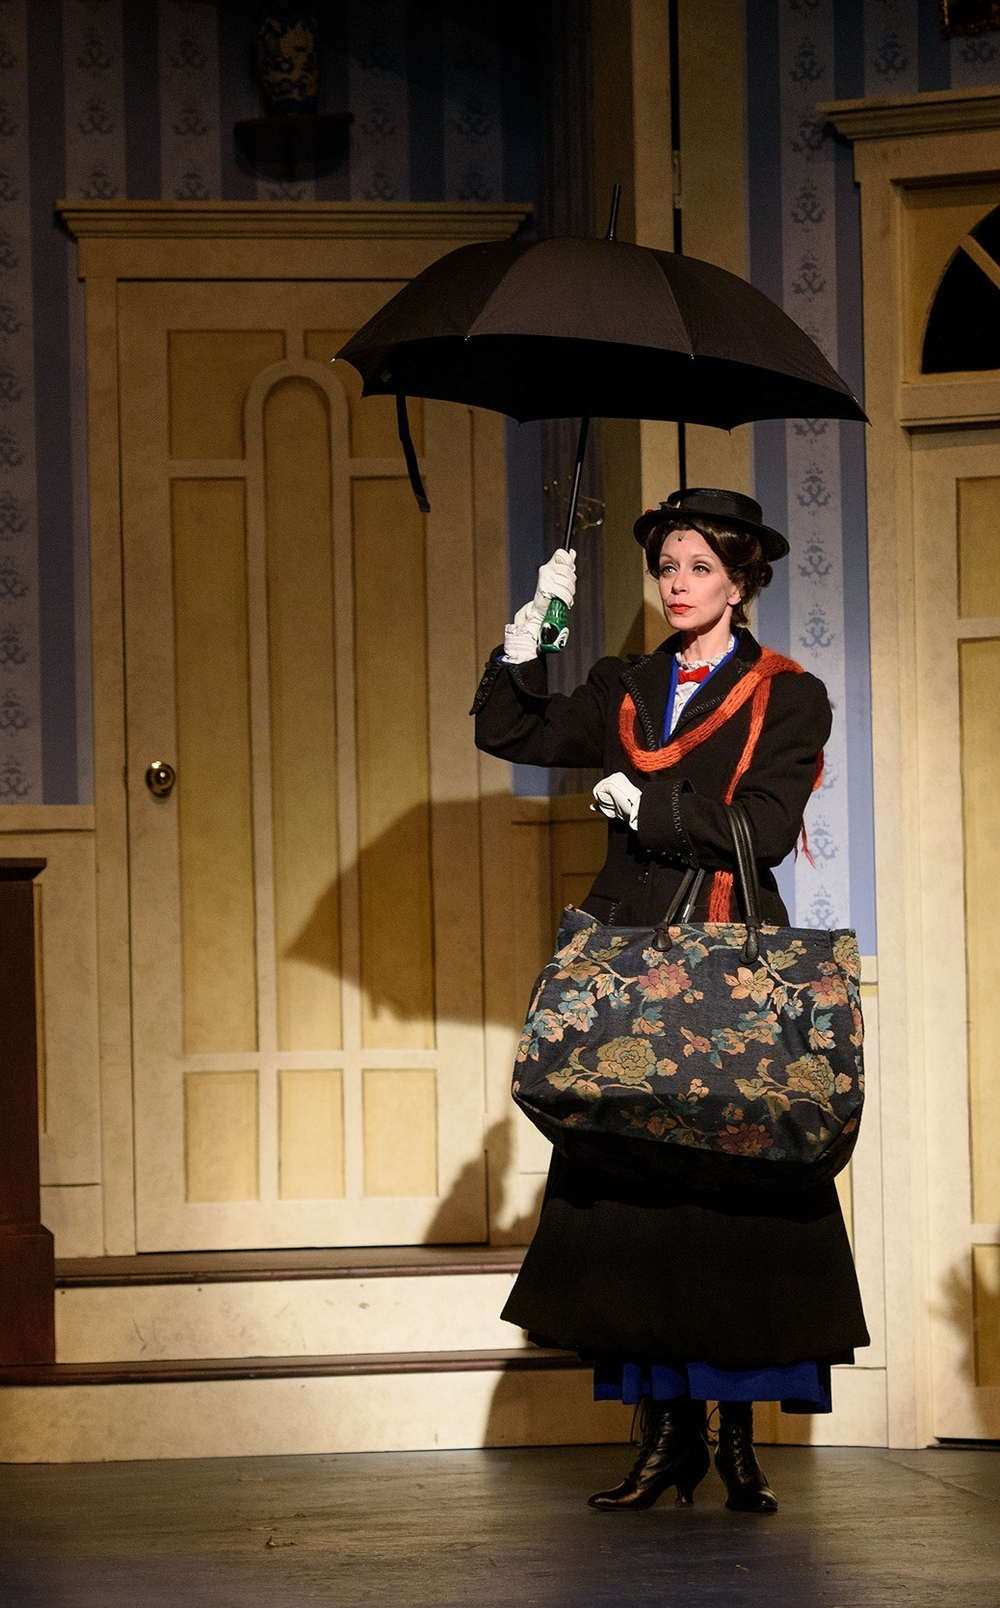 Mary Poppins - Western Canada Theatre & Persephone Theatre